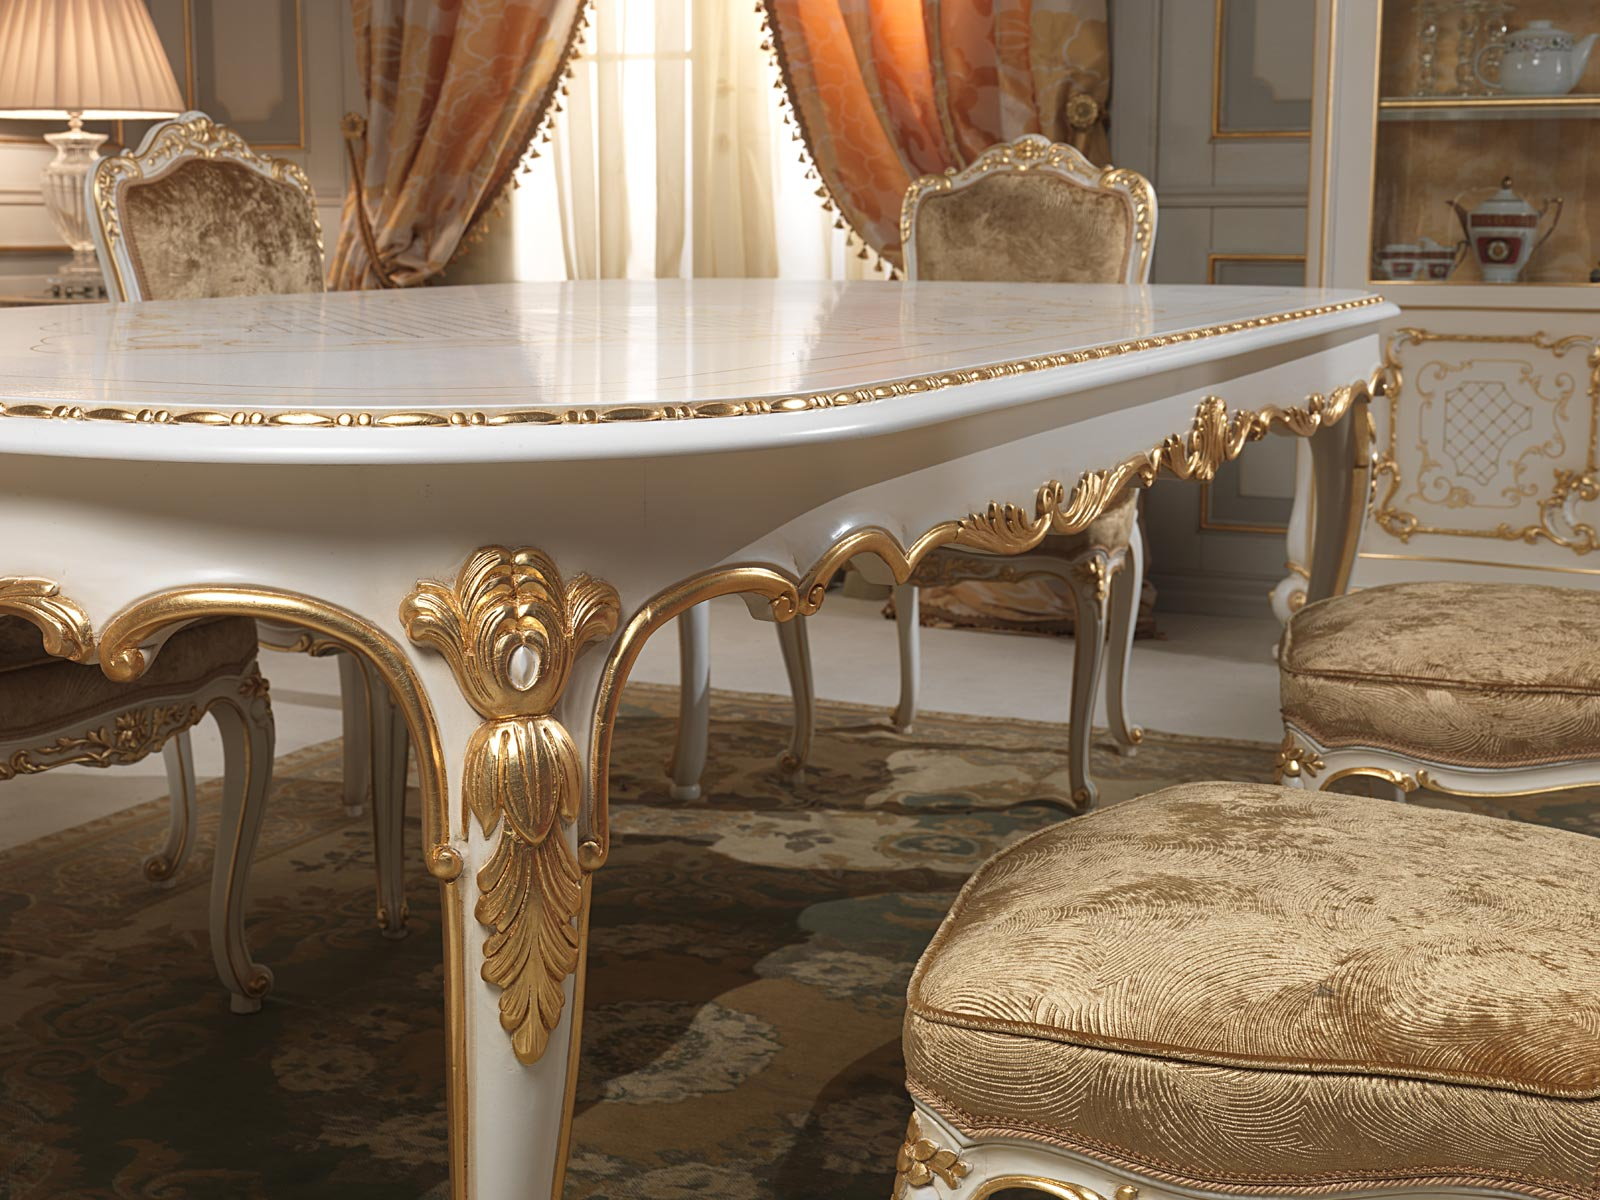 Lovely Venice Furniture #12 - Dining Table In Louis XV Style, Particular Of The Carvings | Vimercati  Classic Furniture